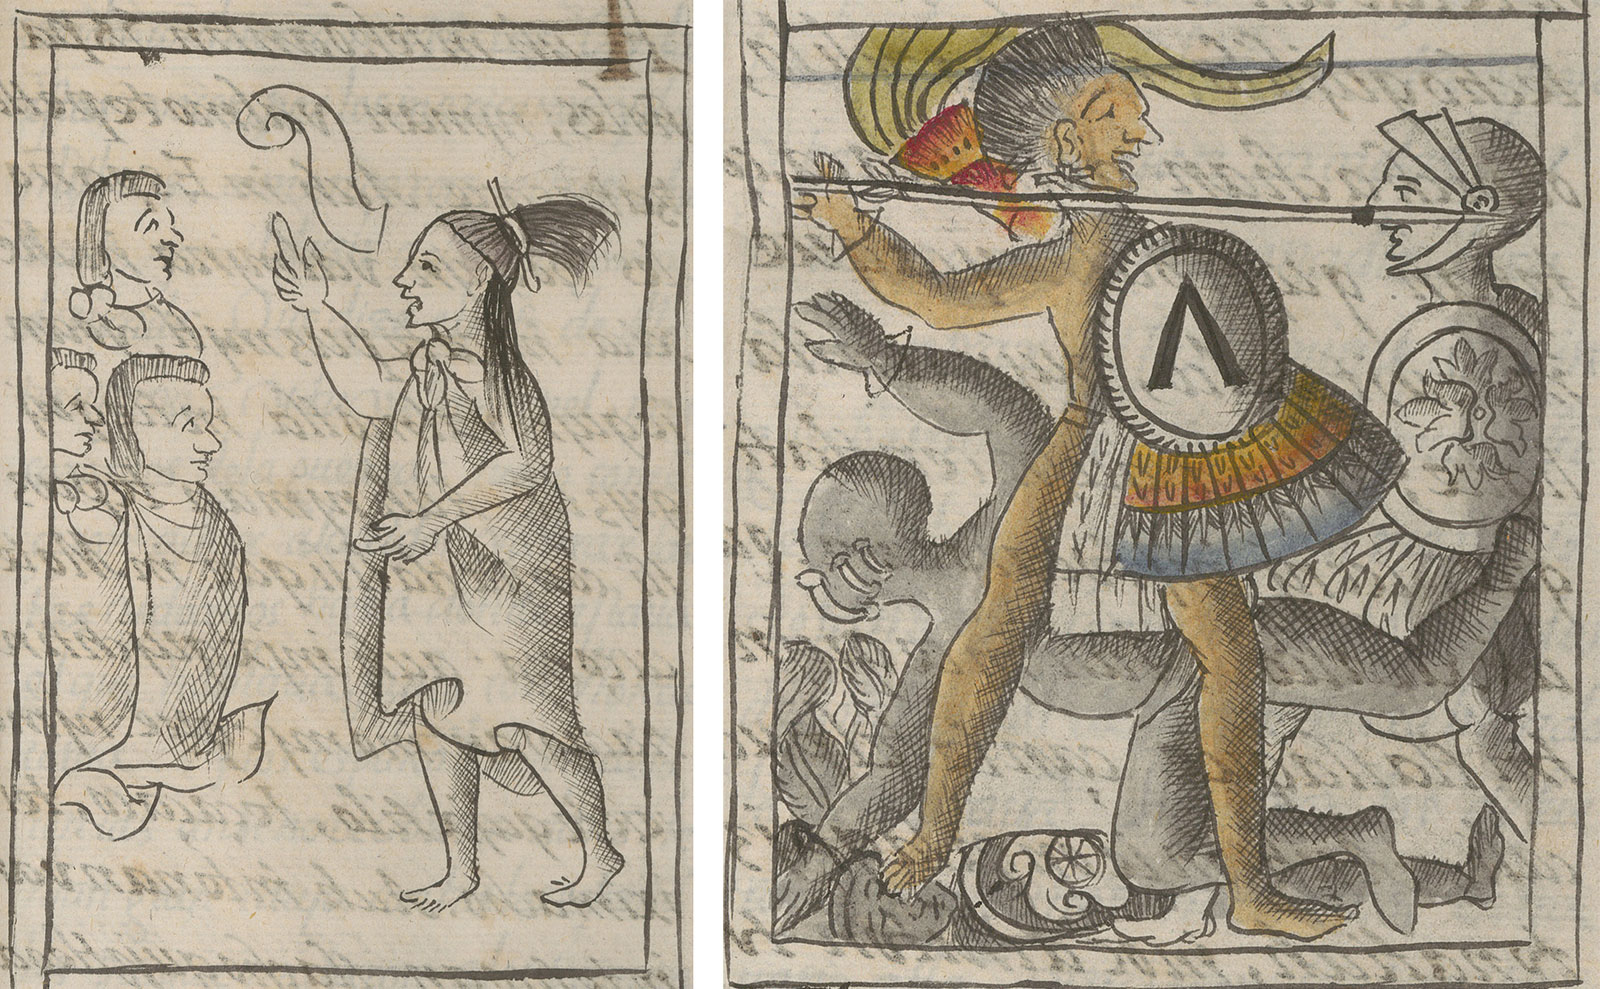 Mexica man speaks to two warriors, calling them to action in black and white drawing. In a second drawing, a Mexica warrior holds a shield and points a spear at a Spanish soldier, while another man falls to the ground. The Mexica warrior is drawn in color and the other figures are drawn in black and white.